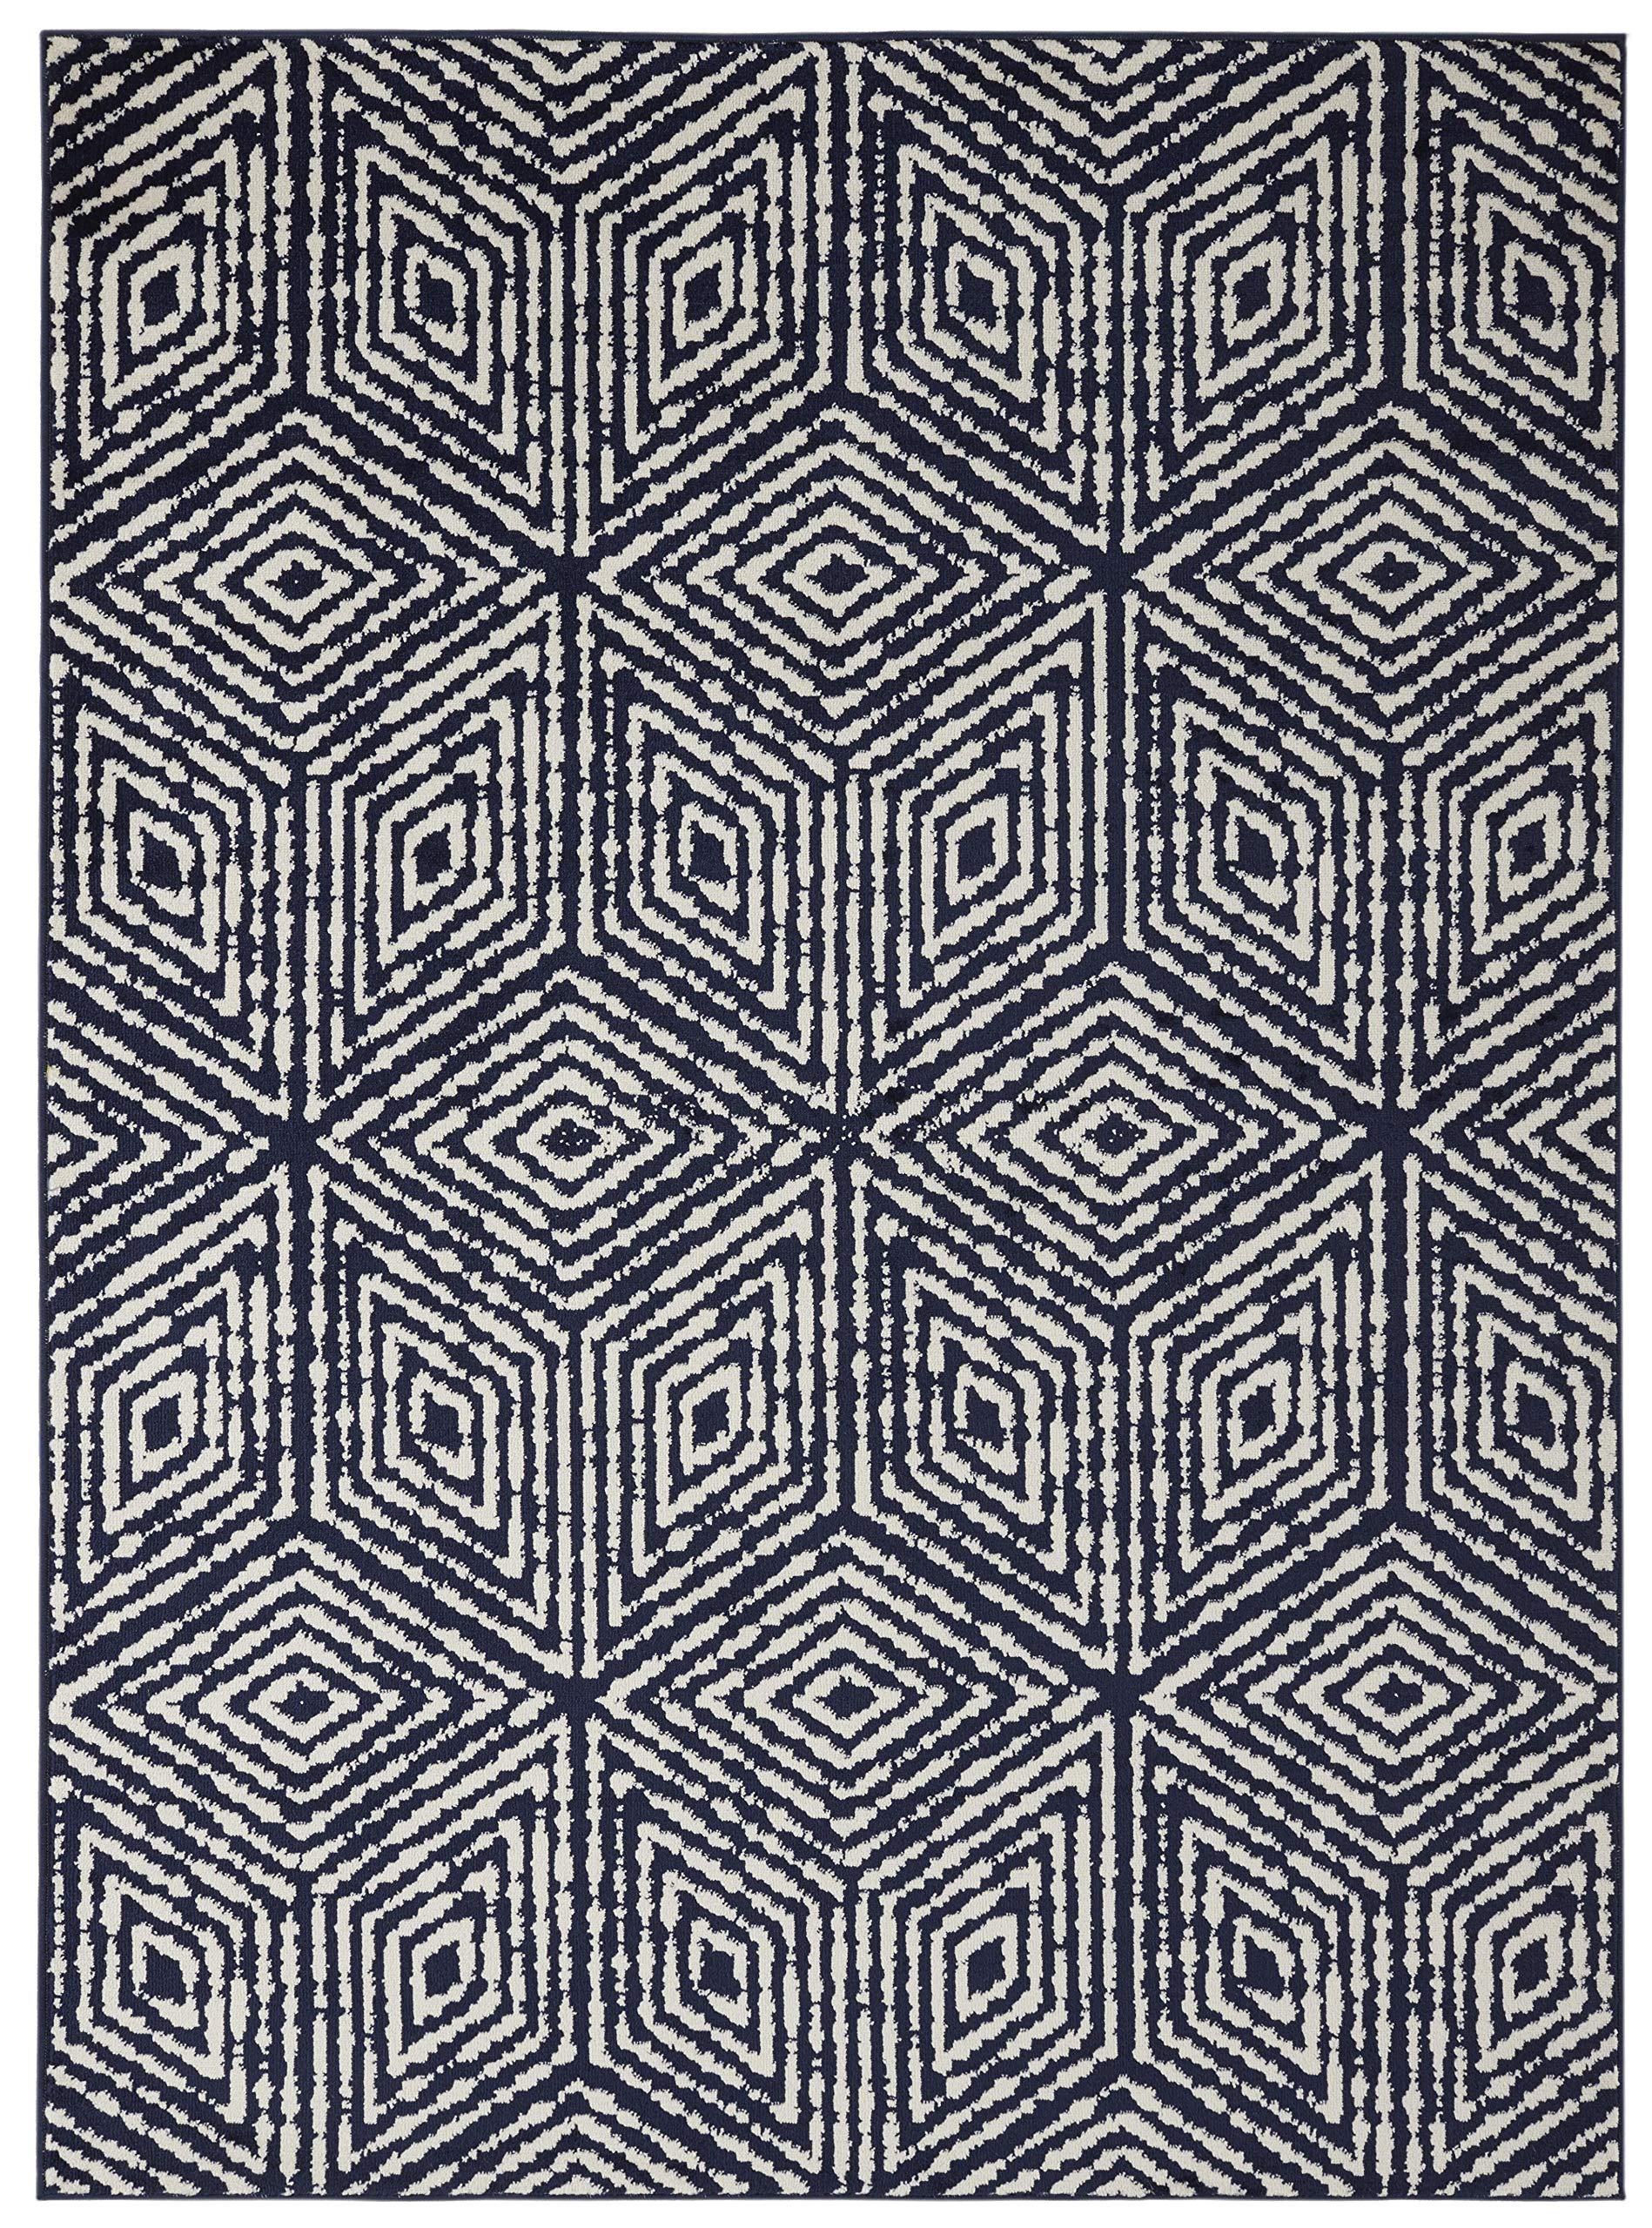 Diagona Designs Contemporary Geometric Cubes Design Modern 8' X 10' Area Rug, 94'' W x 118'' L, Navy/Ivory (JAS2195) by Diagona Designs (Image #2)